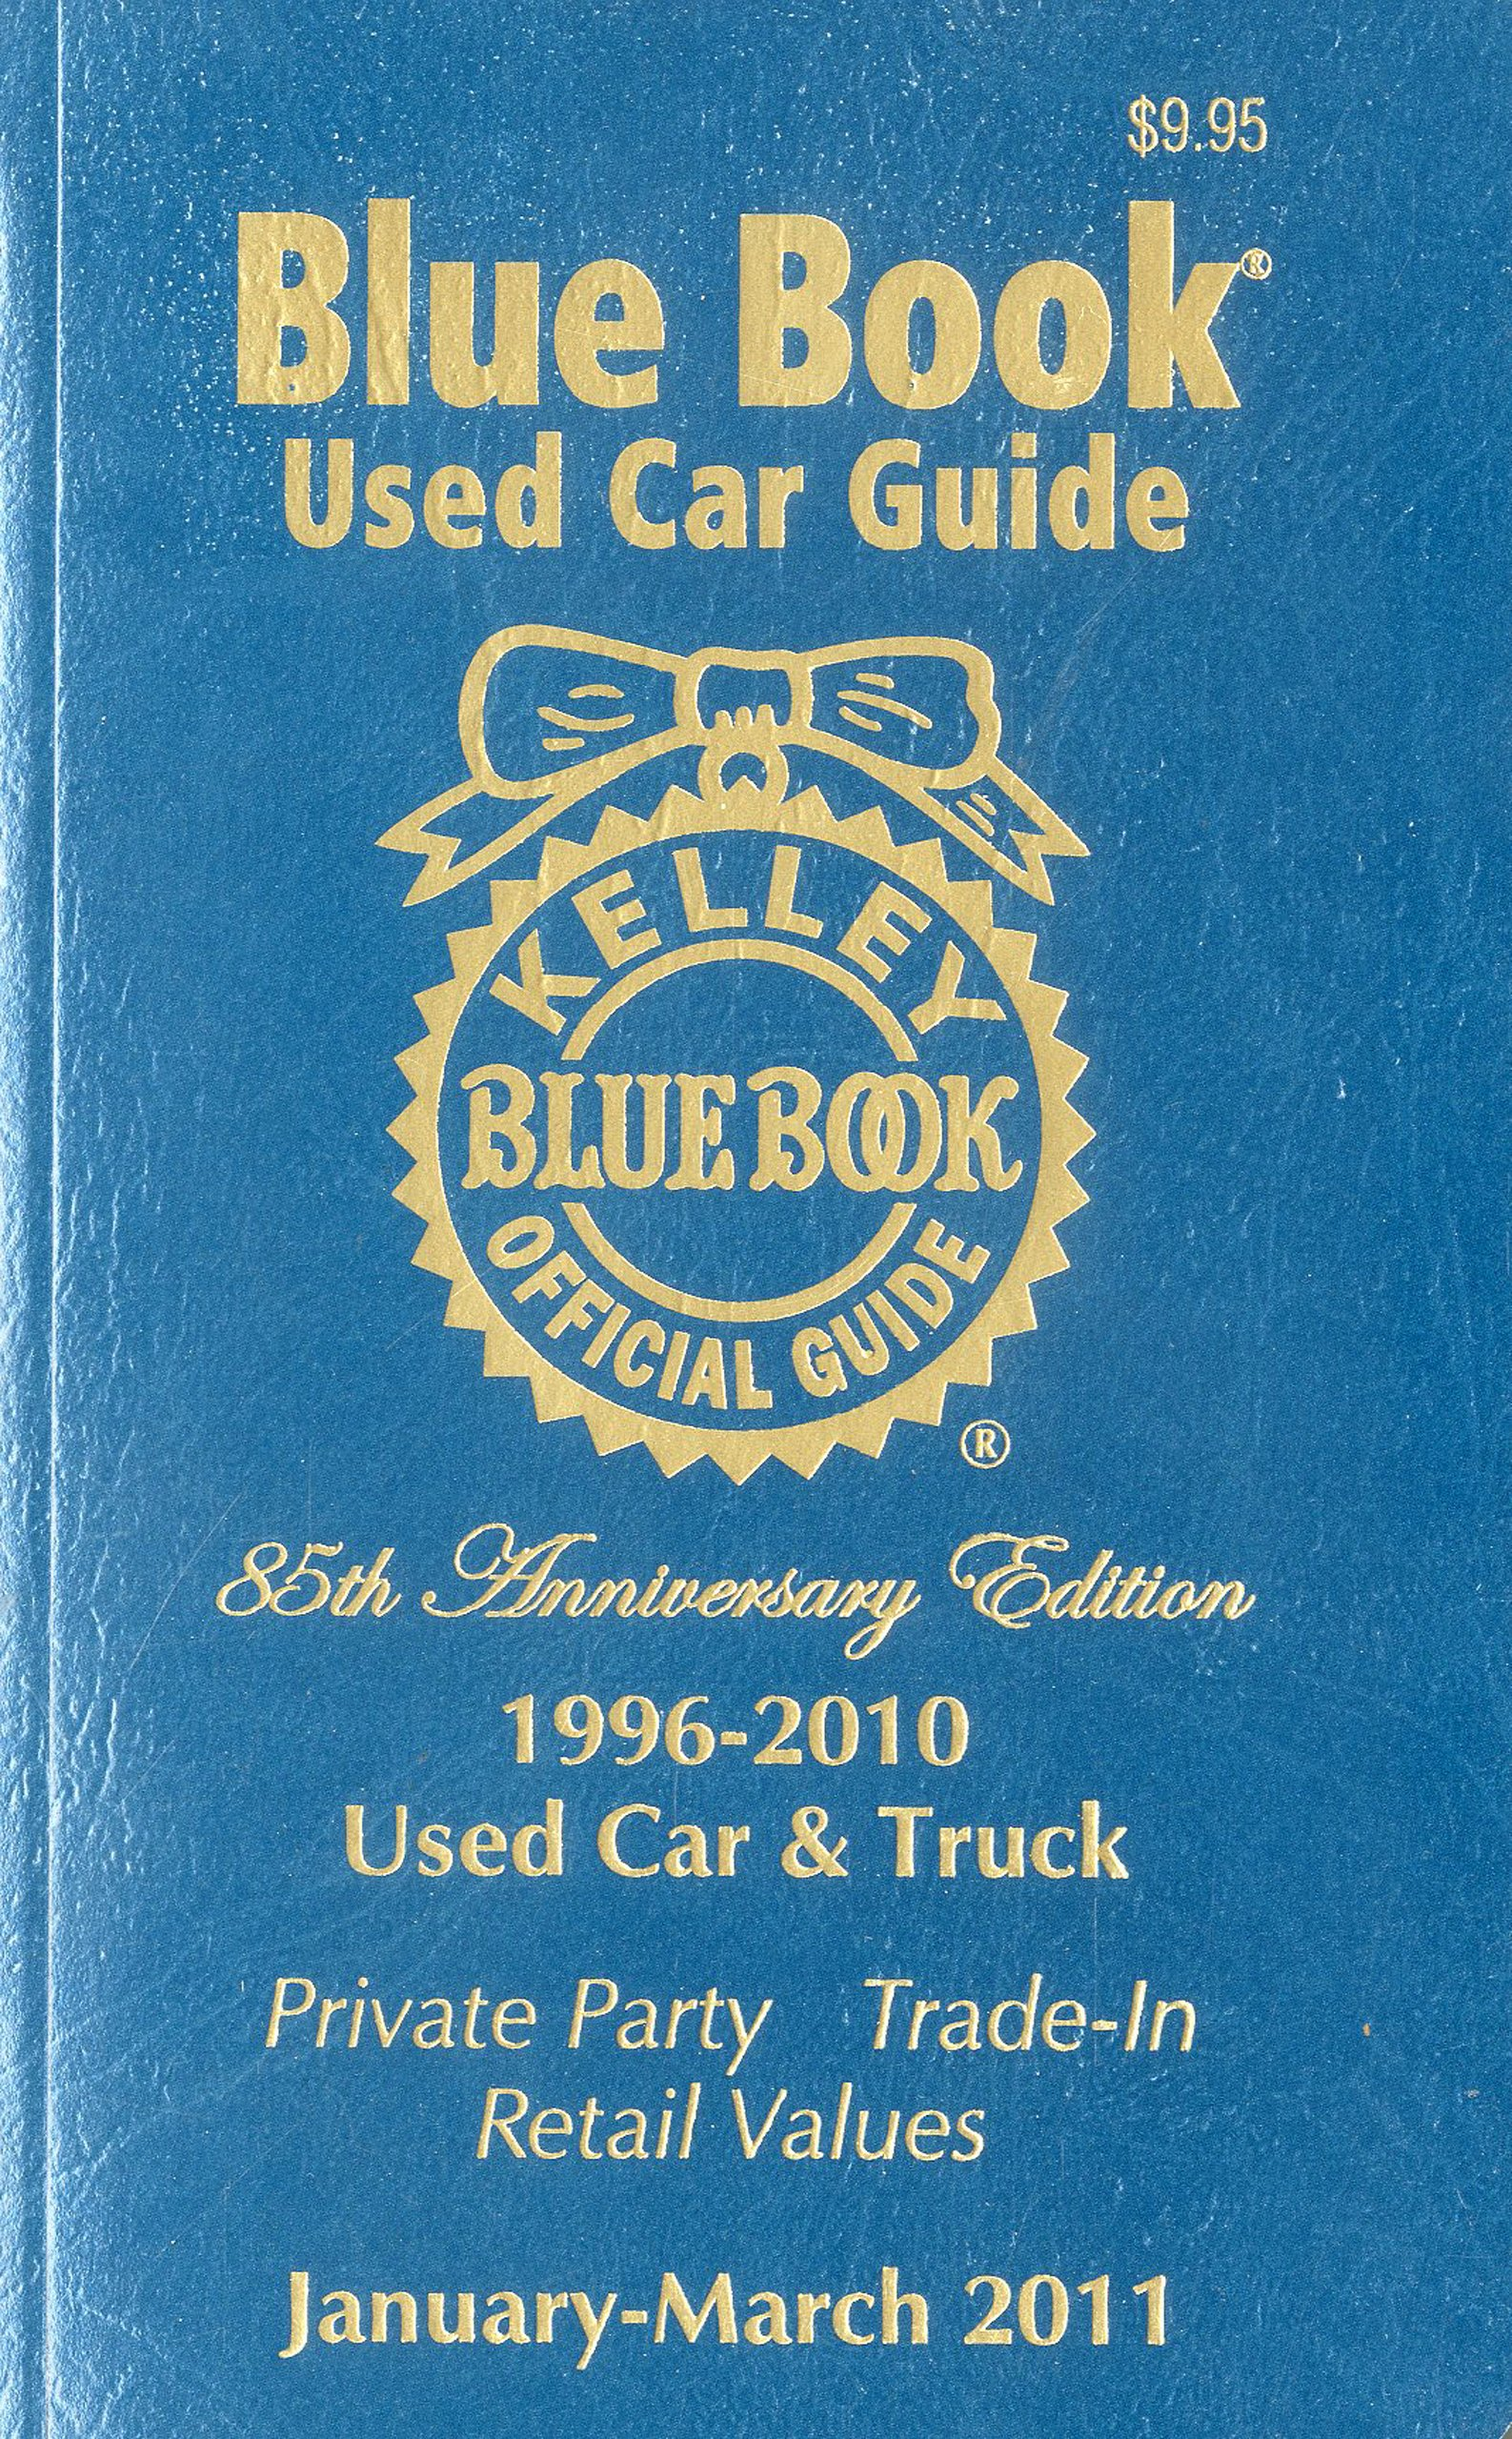 kelley blue book used car guide consumer edition 1996 2010 models january march 2011 book online at low prices in india